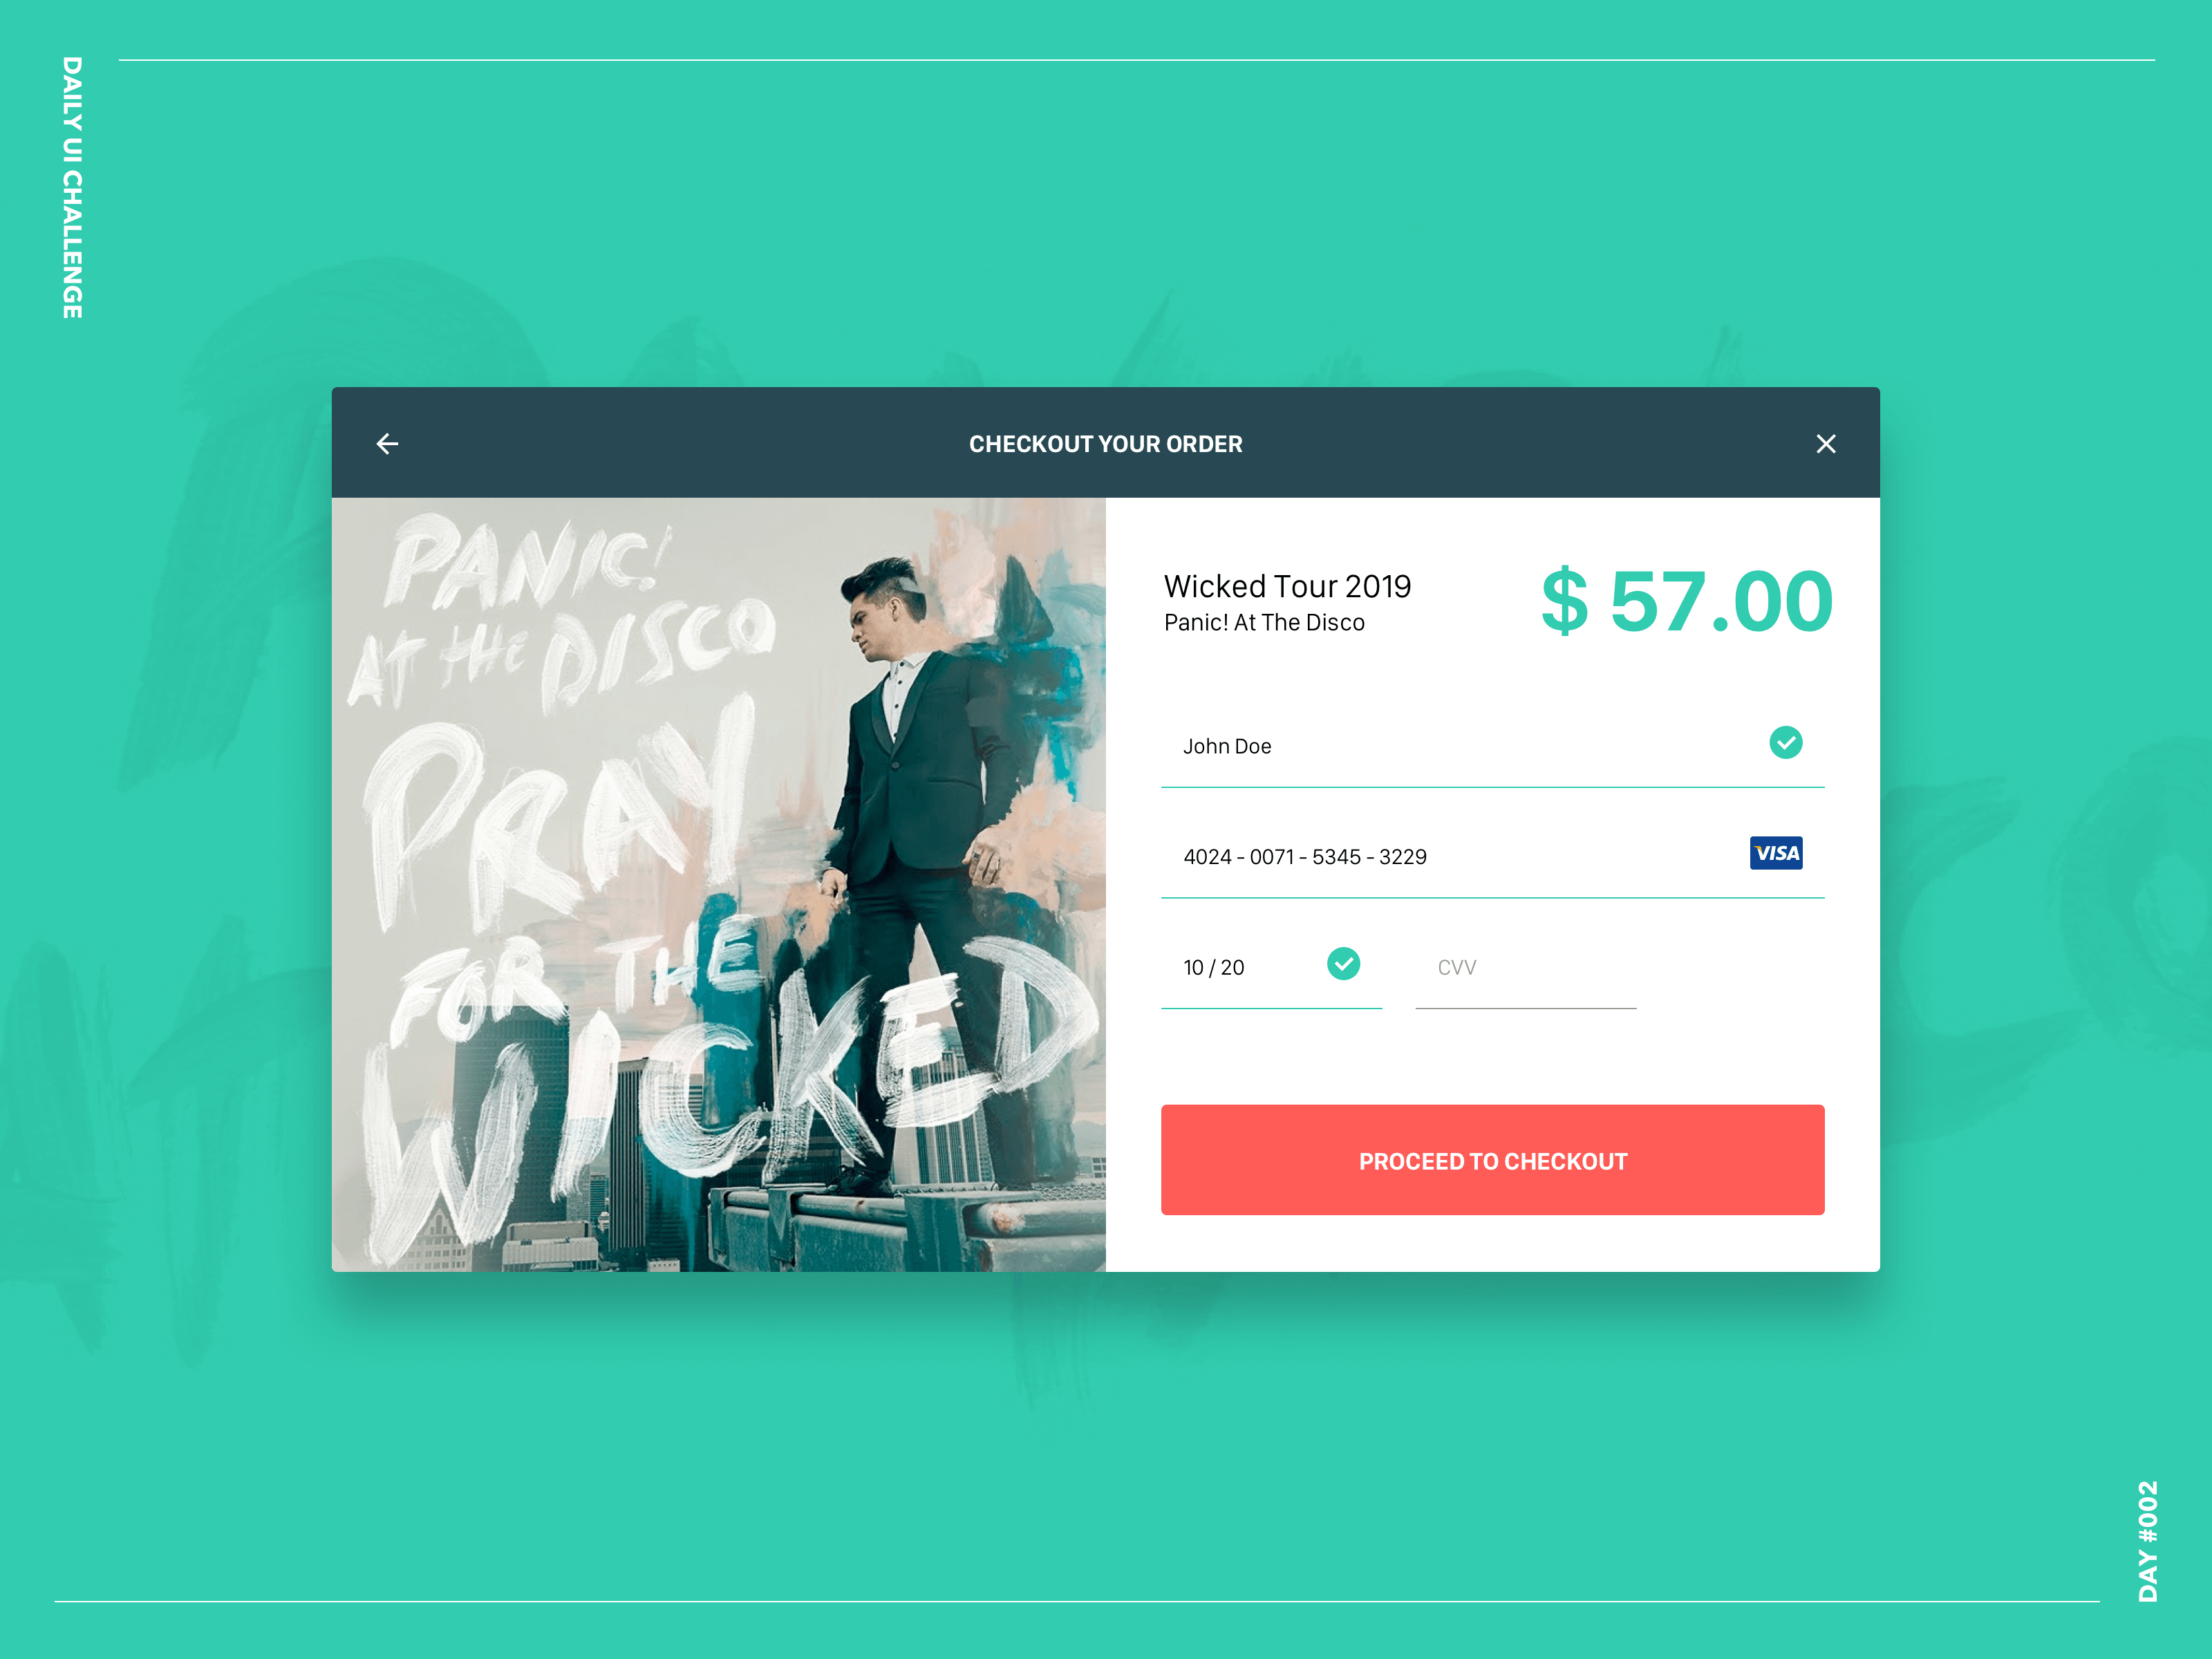 002-DUIC-Check-Out-Dribbble-1